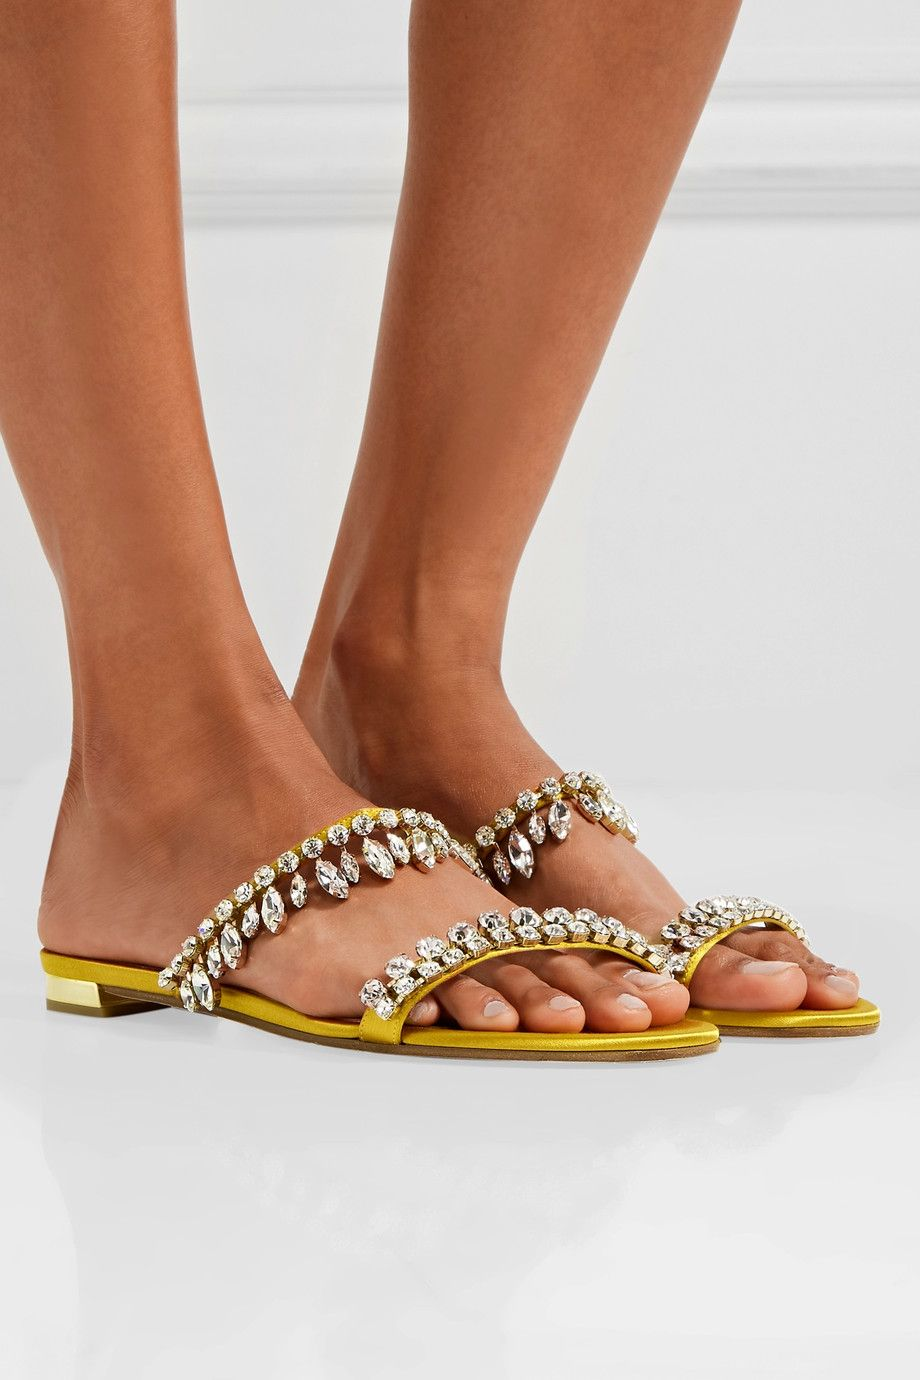 Aquazzura Eden embellished satin sandals discount enjoy newest cheap online discount real very cheap sale online best prices for sale hOsvxrVeG6